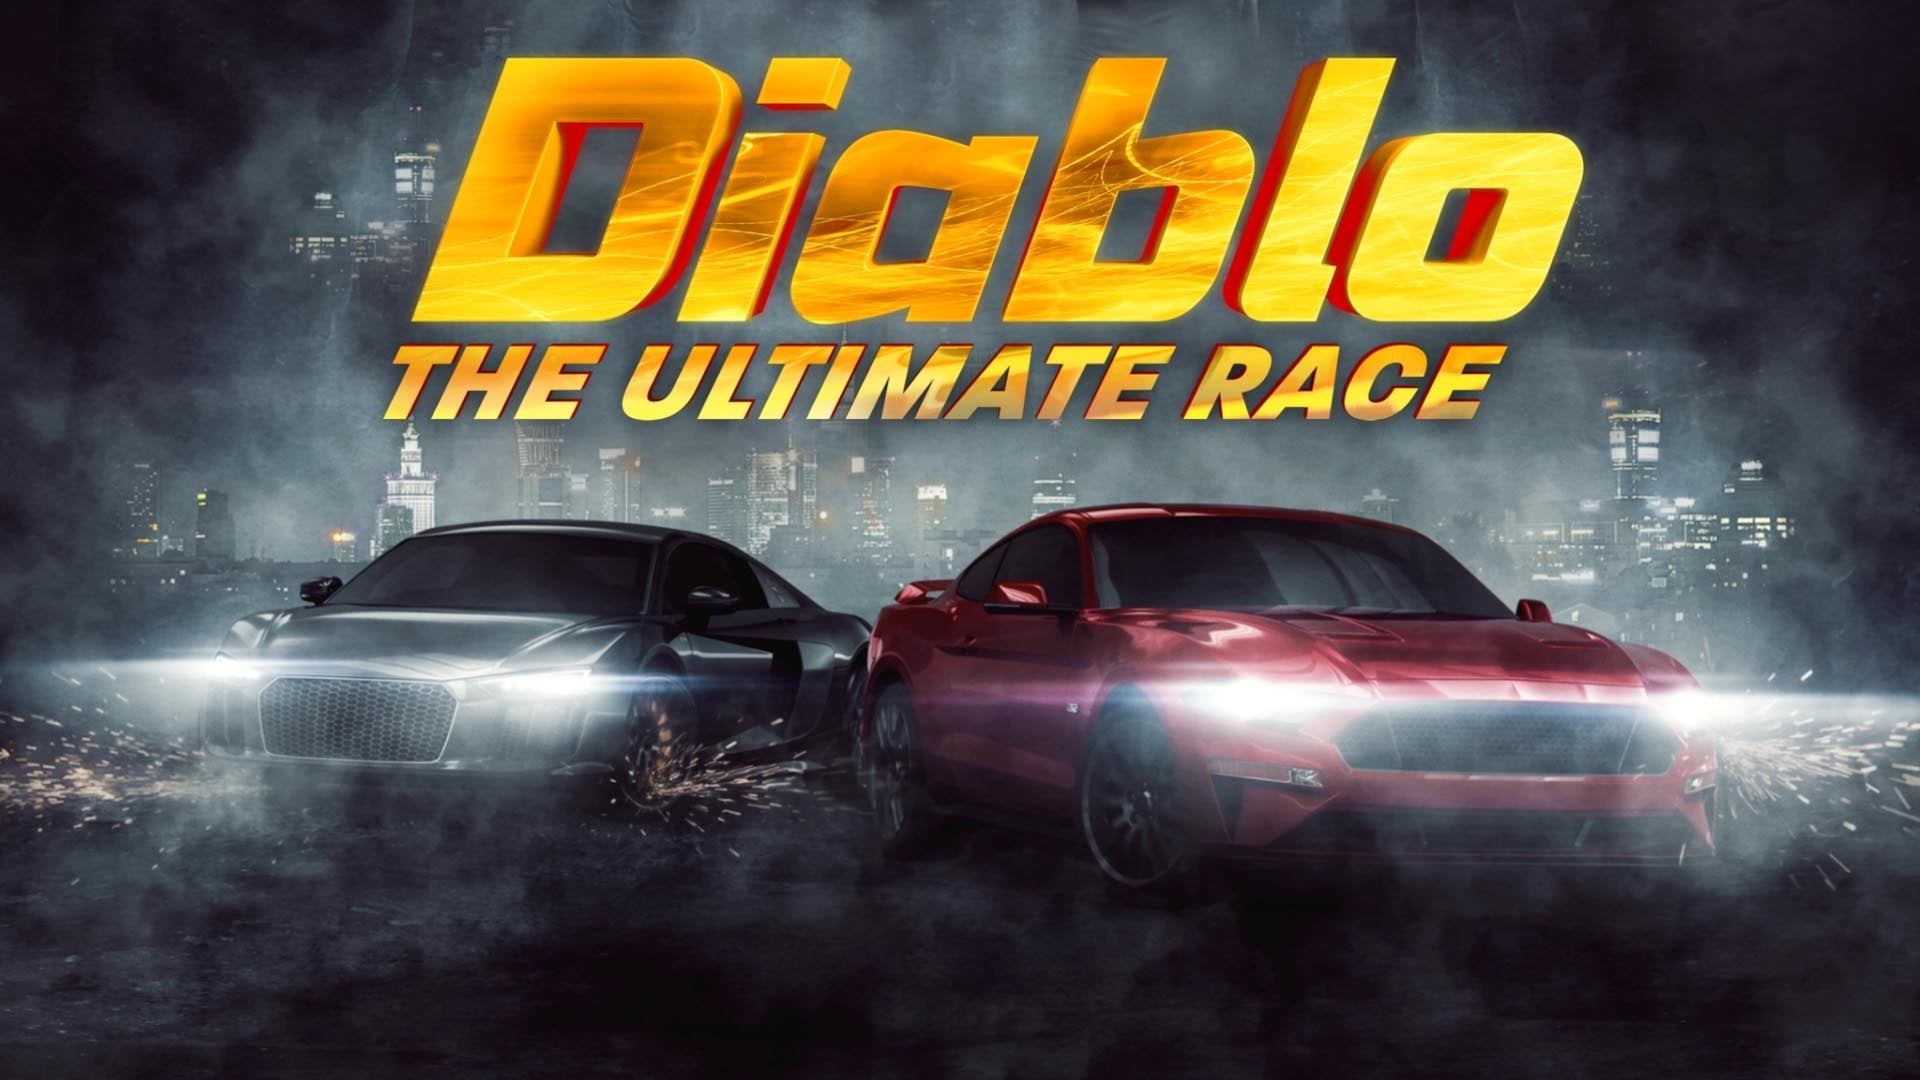 Diablo The ultimate race